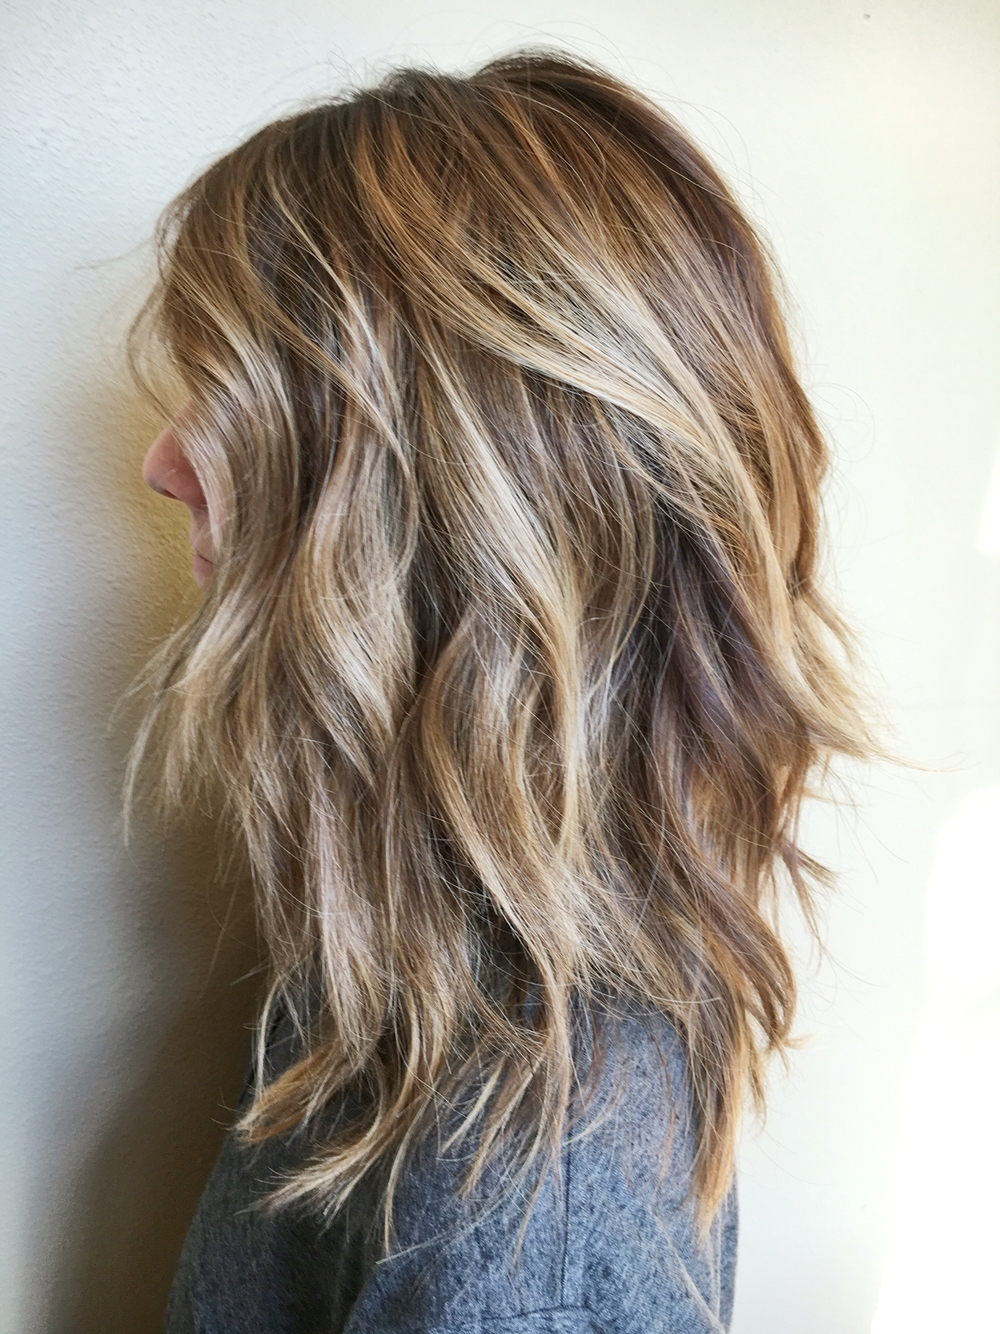 40 Amazing Medium Length Hairstyles & Shoulder Length Medium Hairstyles With Bangs And Highlights